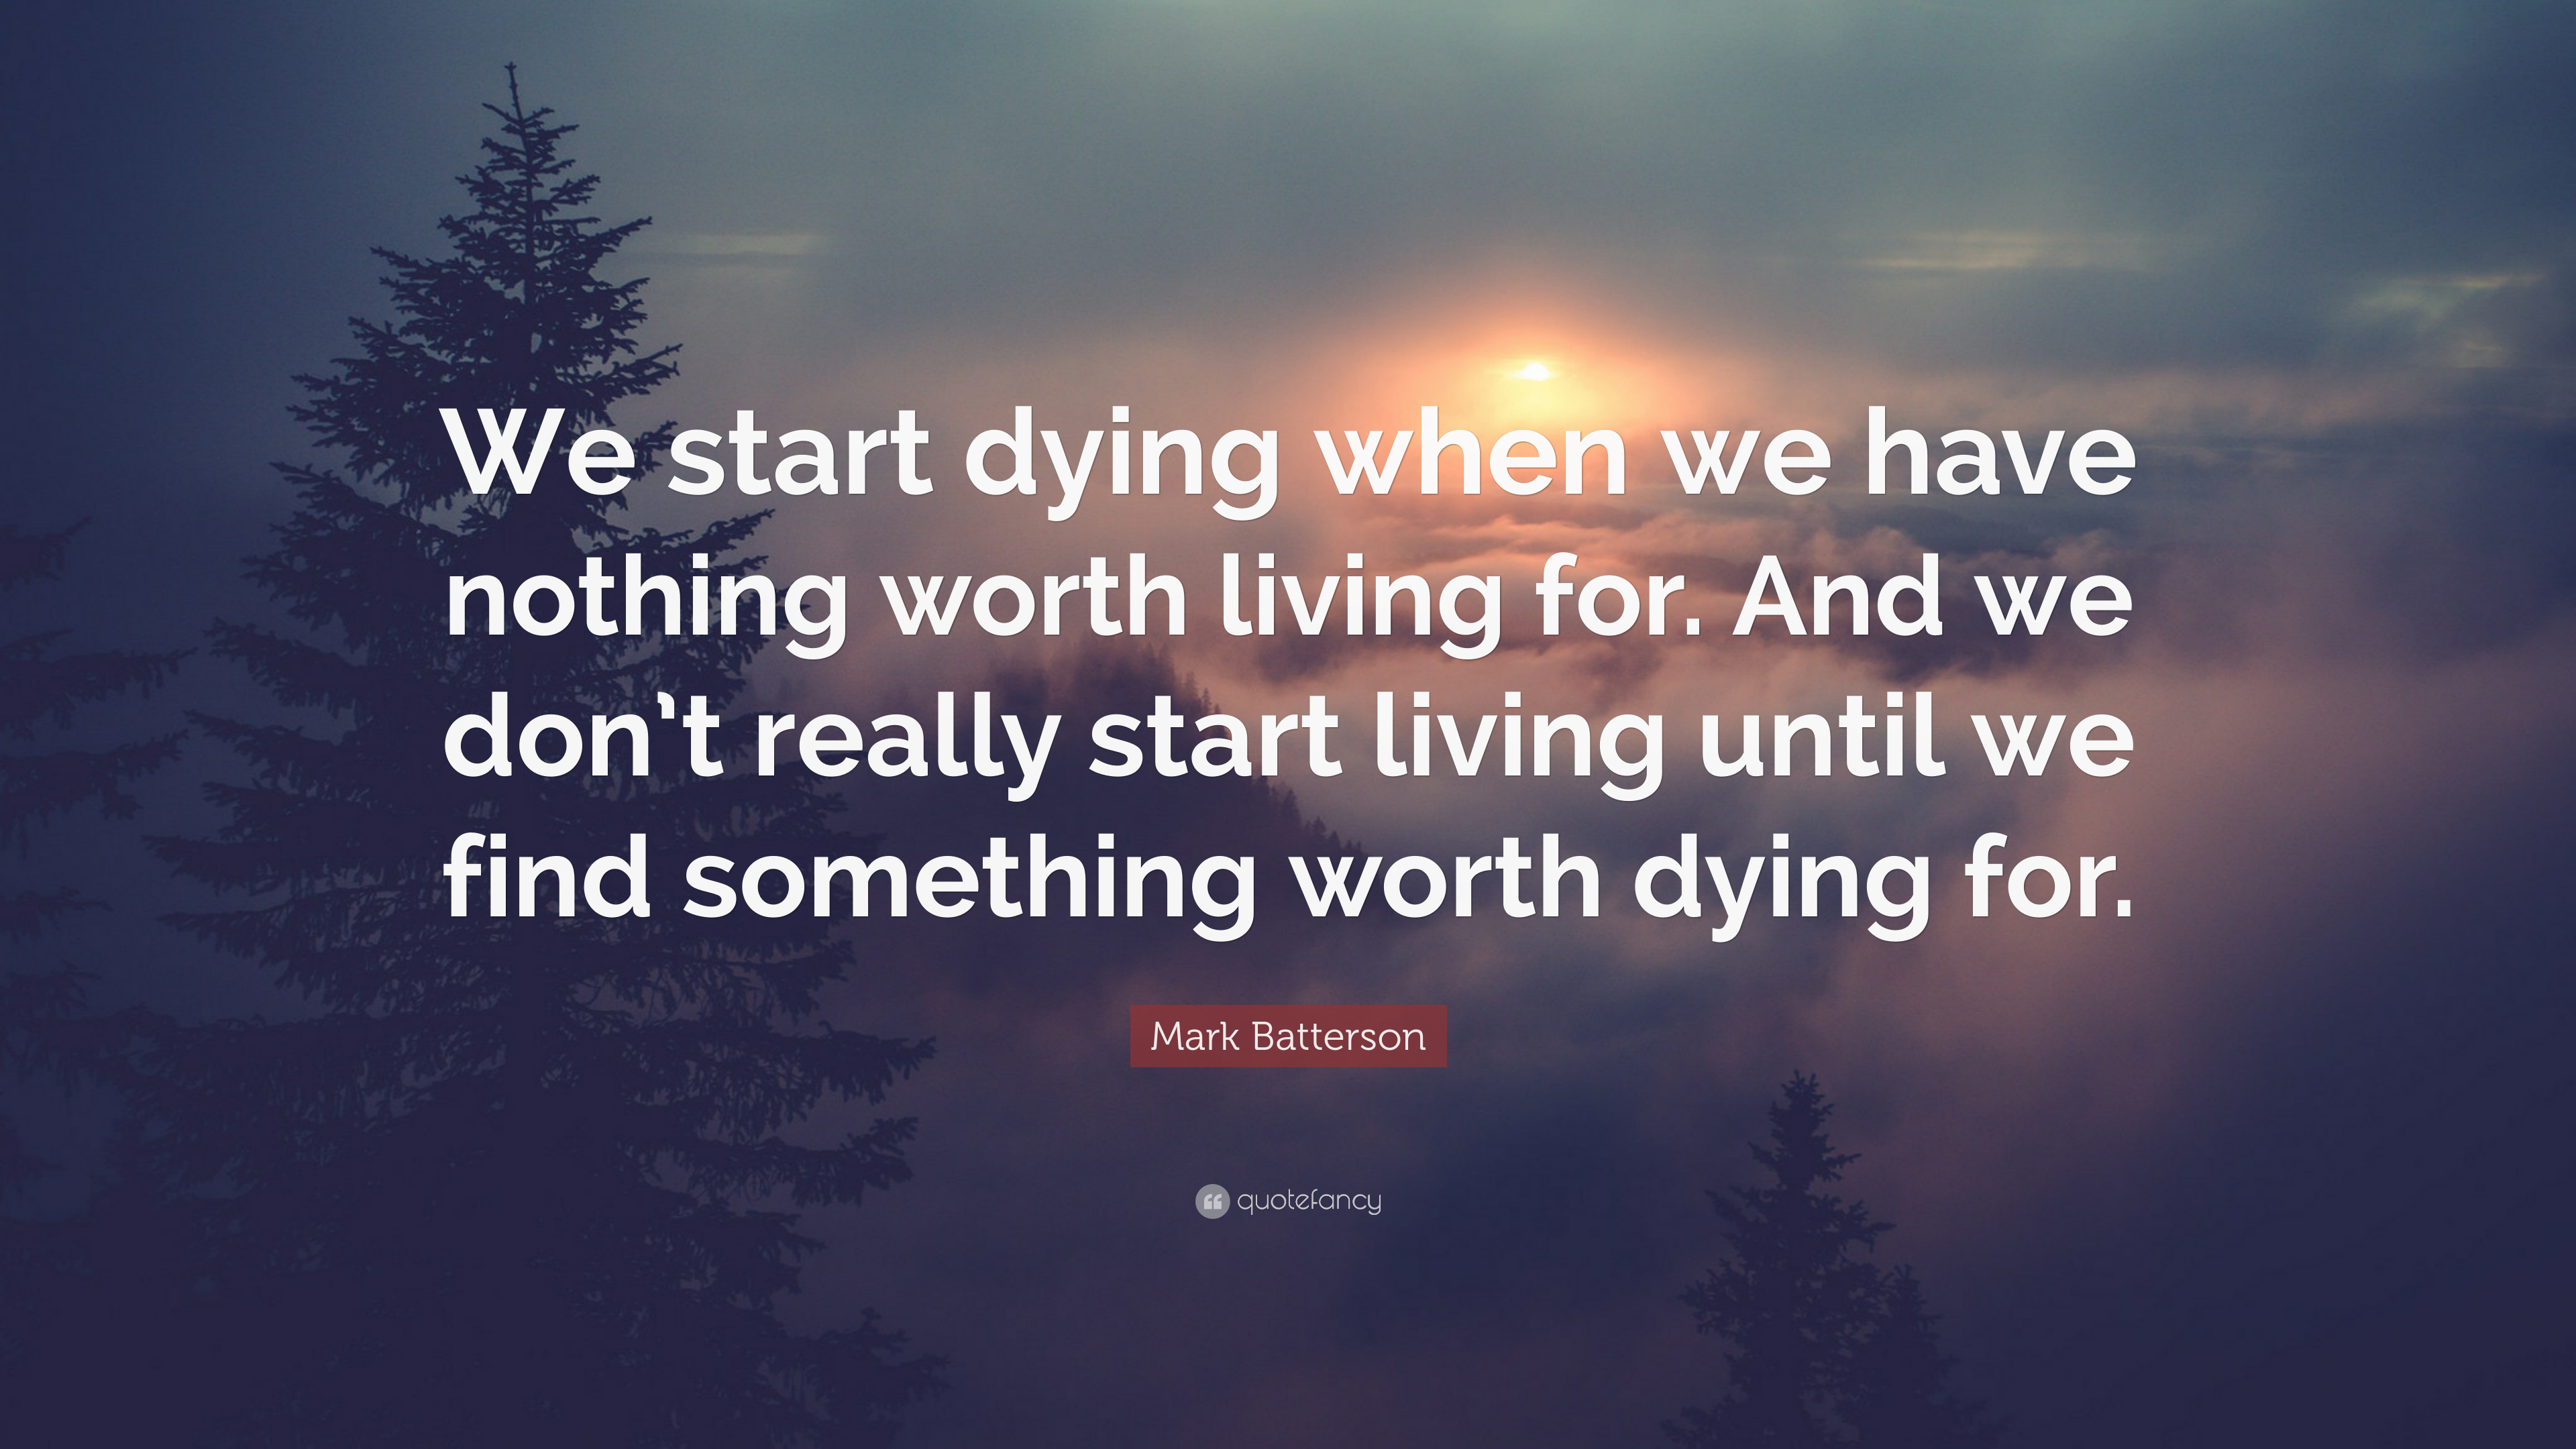 there anything life worth dying Worth dying for quotes i just want to live a life worth dying for 48 up, 12 down there are things worth dying for 9 up, 0 down sirius black quotes.